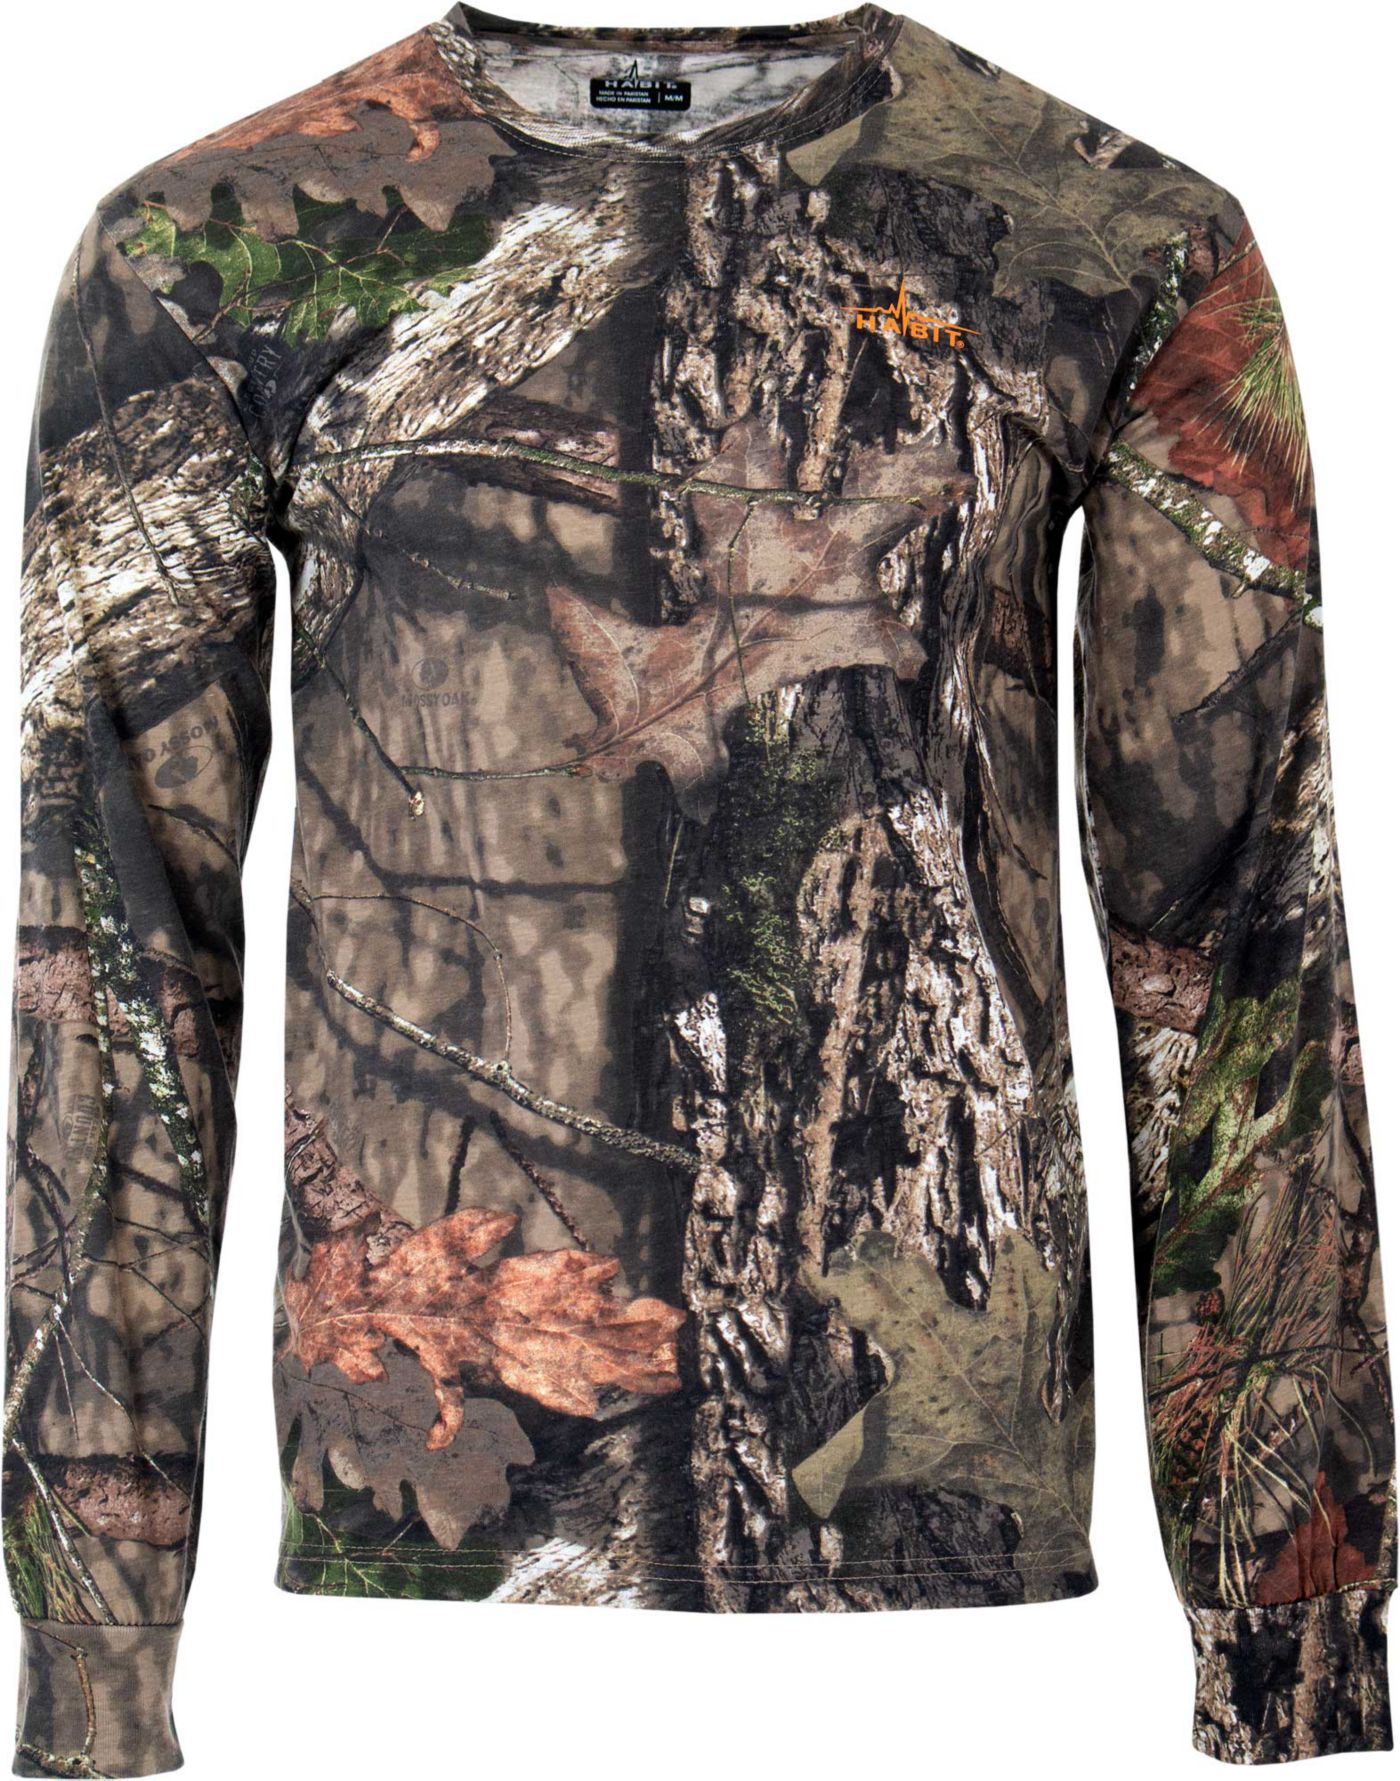 Habit Men's Bear Cave Camo Long Sleeve Hunting T-Shirt